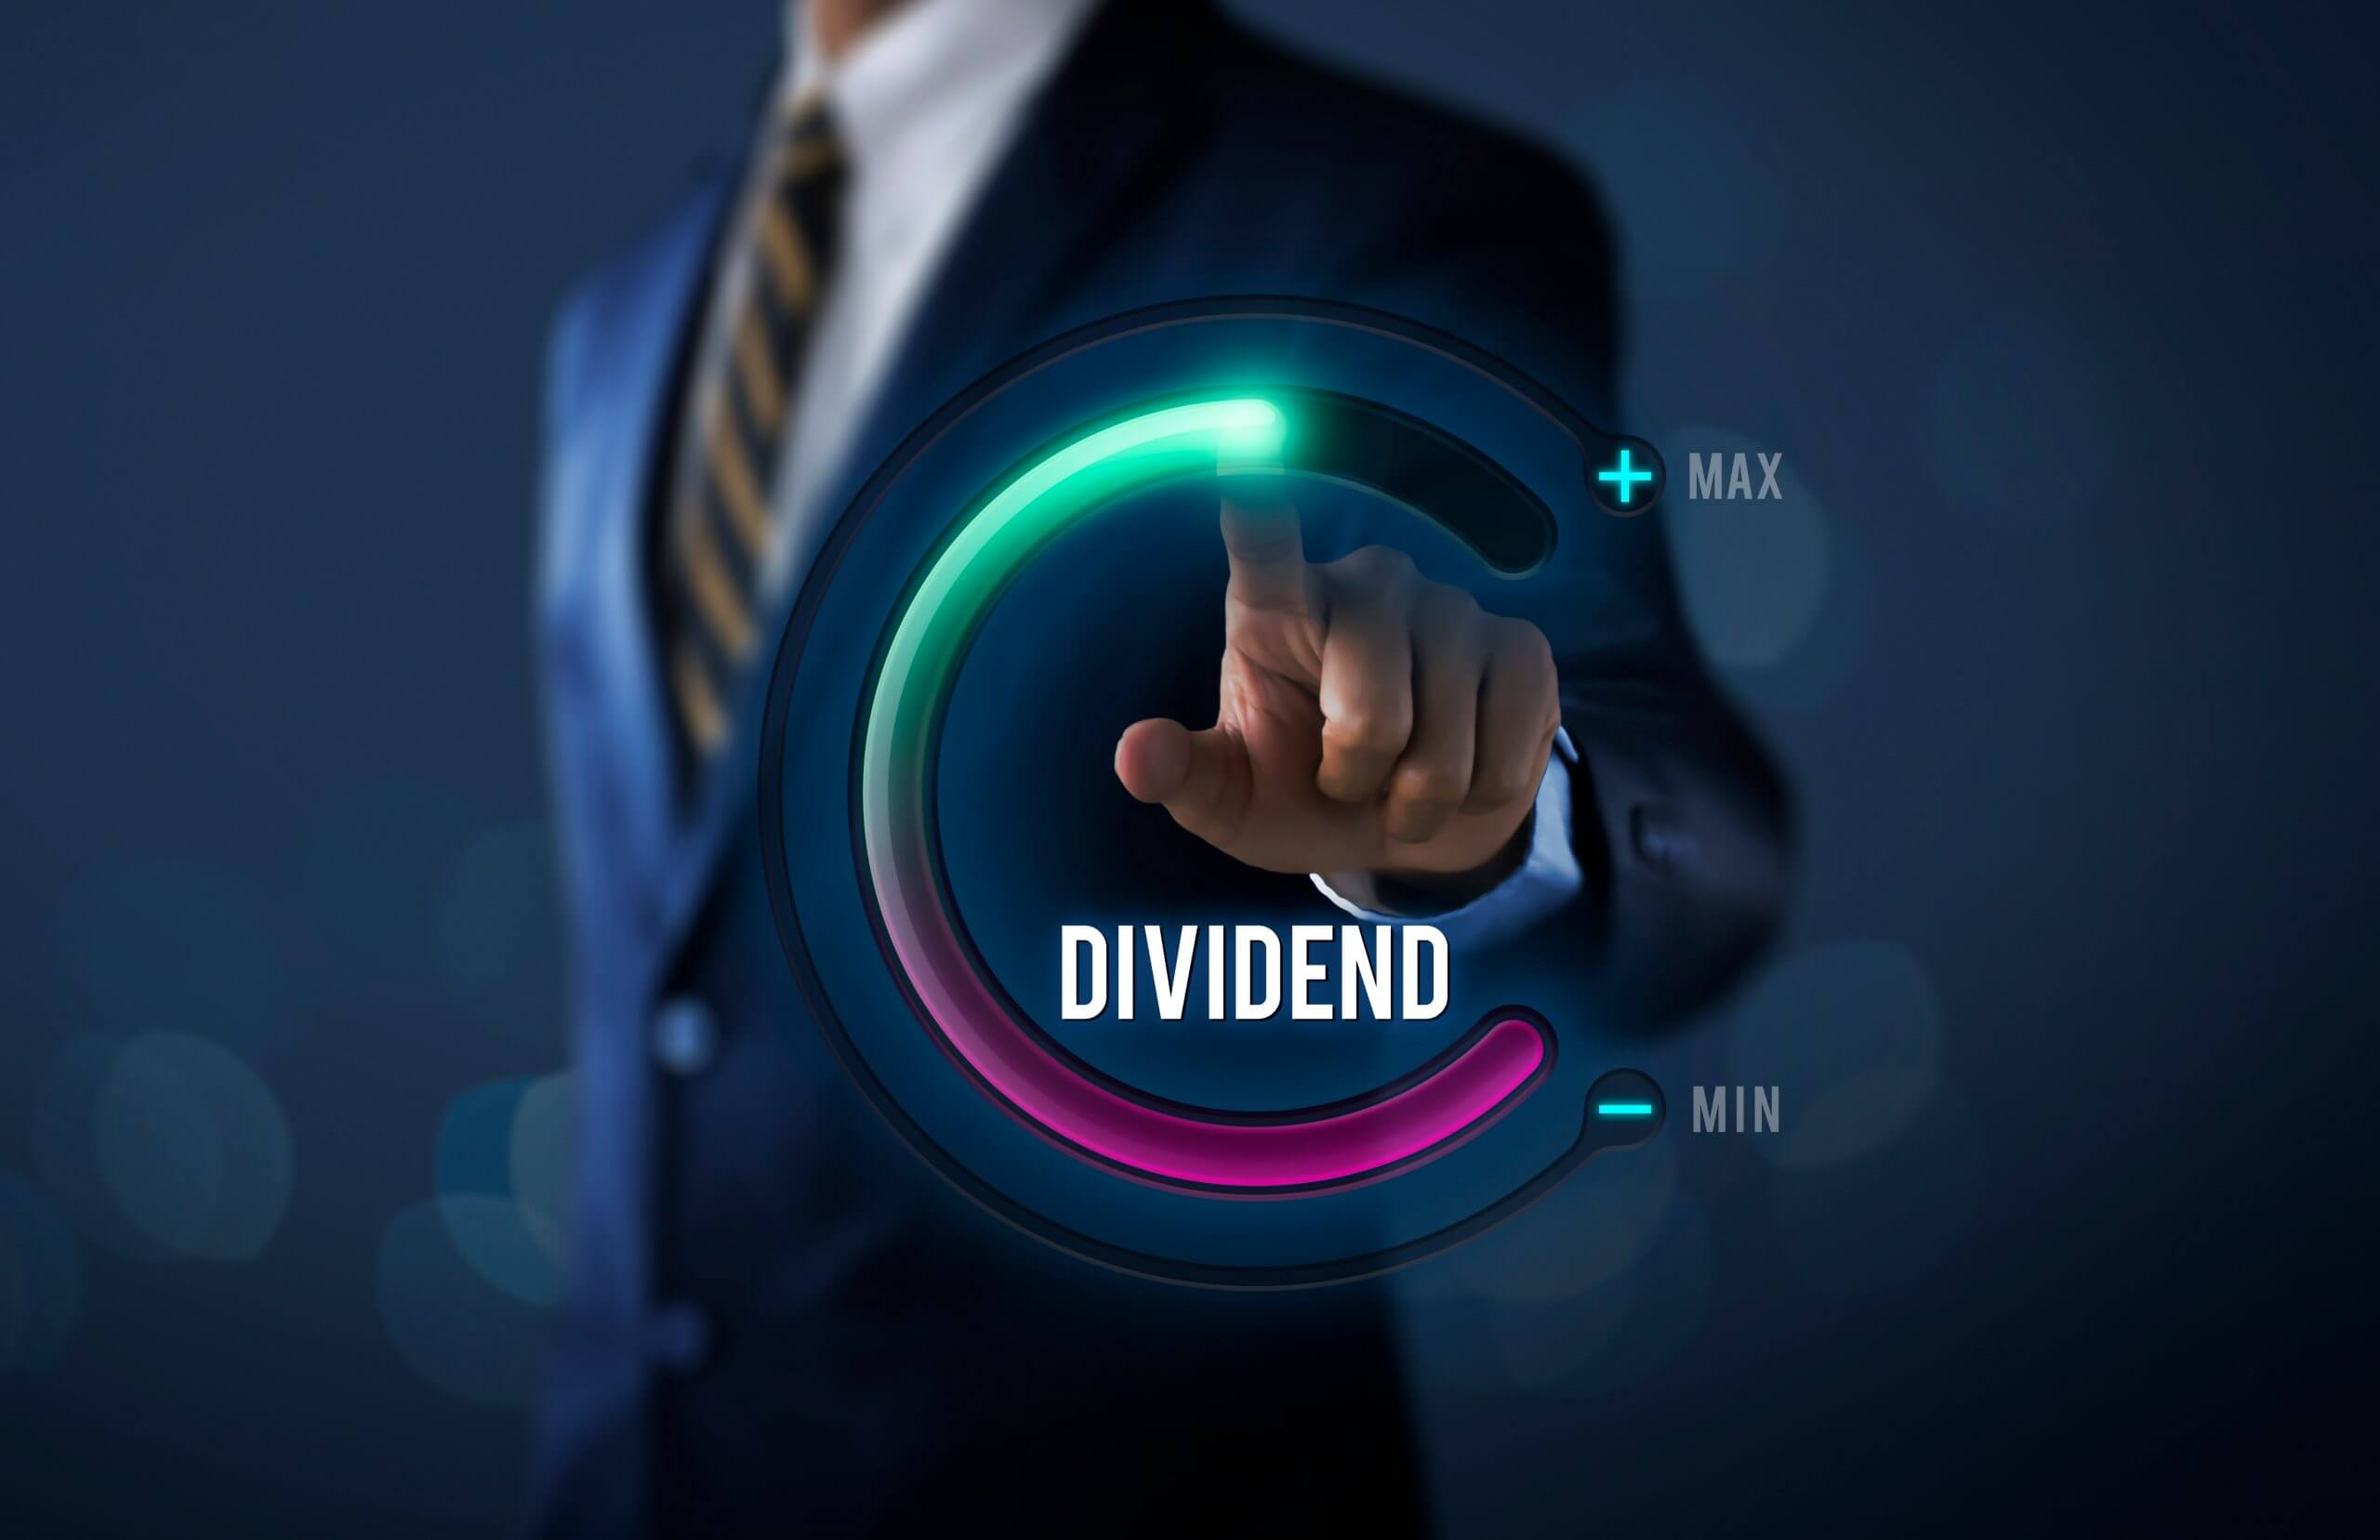 DGI - Dividend Growth Investing o Dividendo Creciente